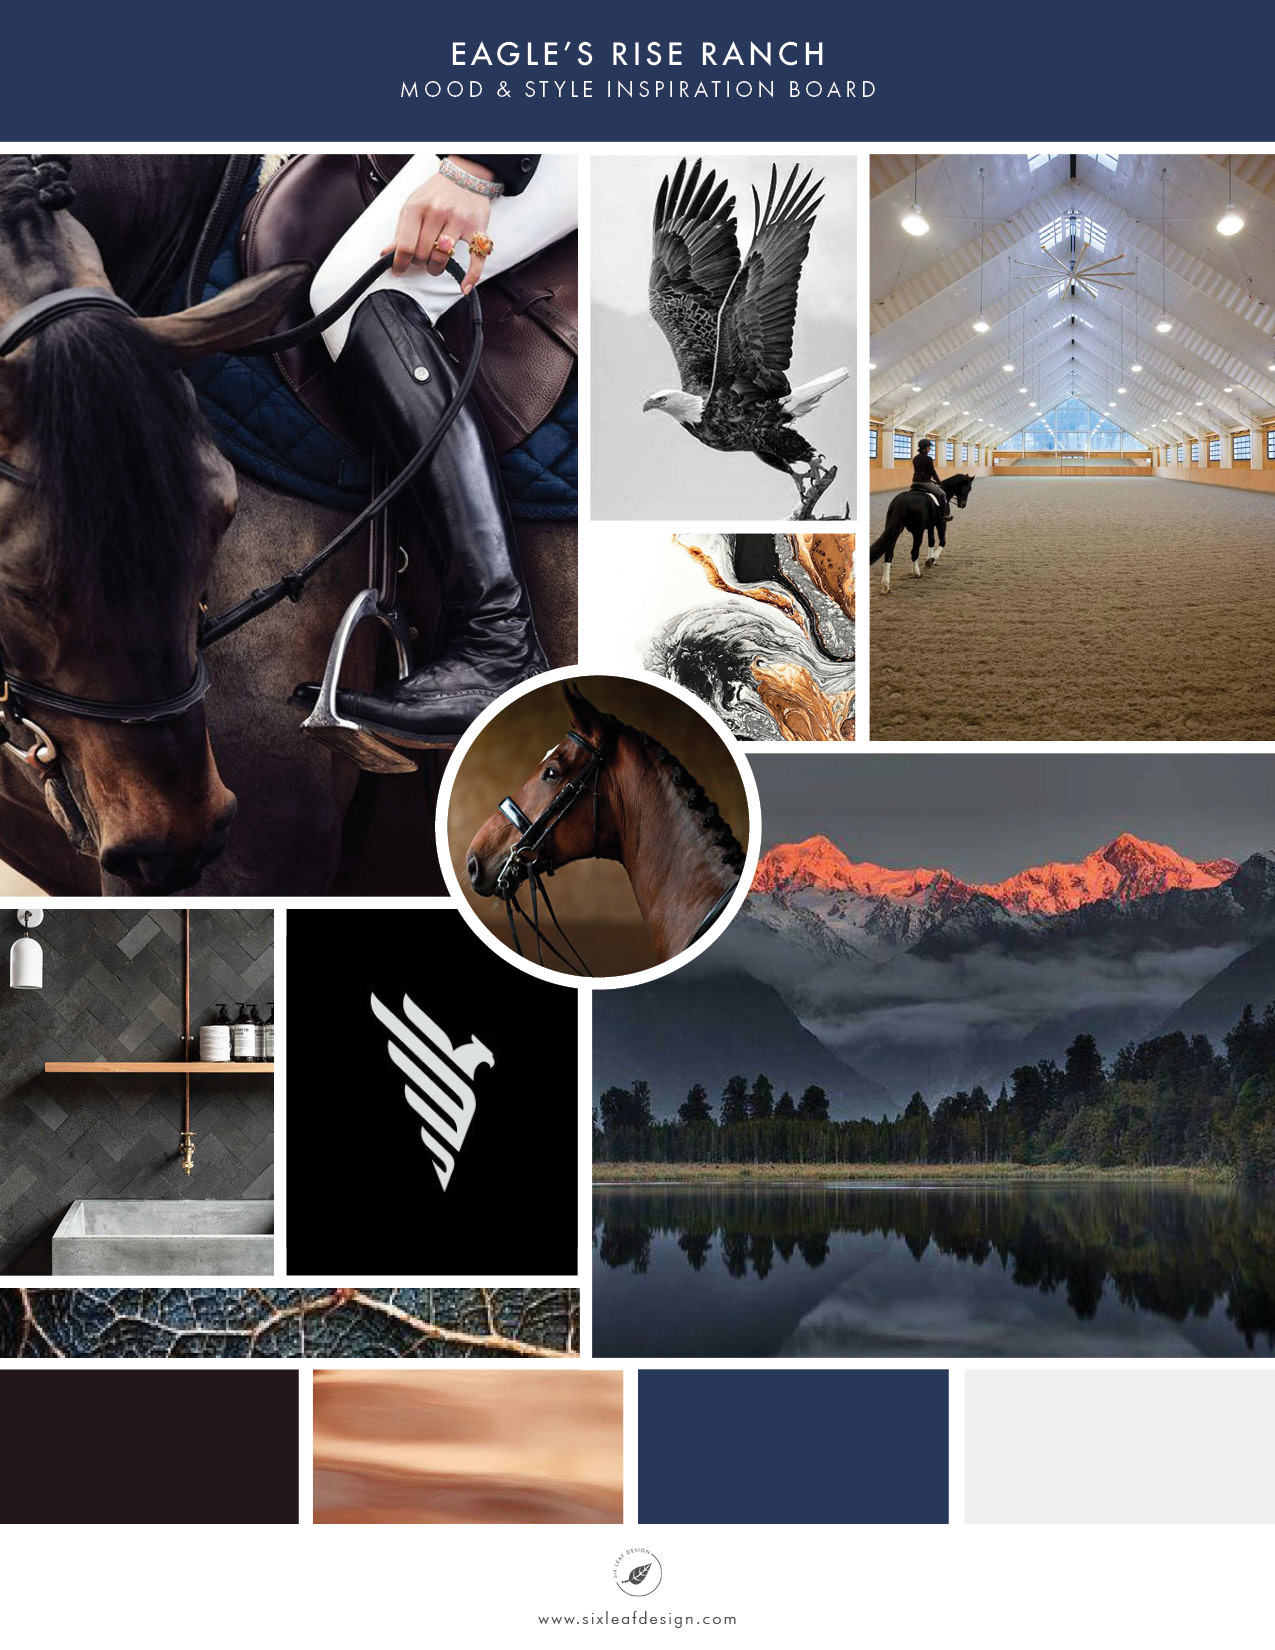 How To Start Your Brand With A Mood Board | Mood & Style Inspiration for Dressage & Horse Training Ranch